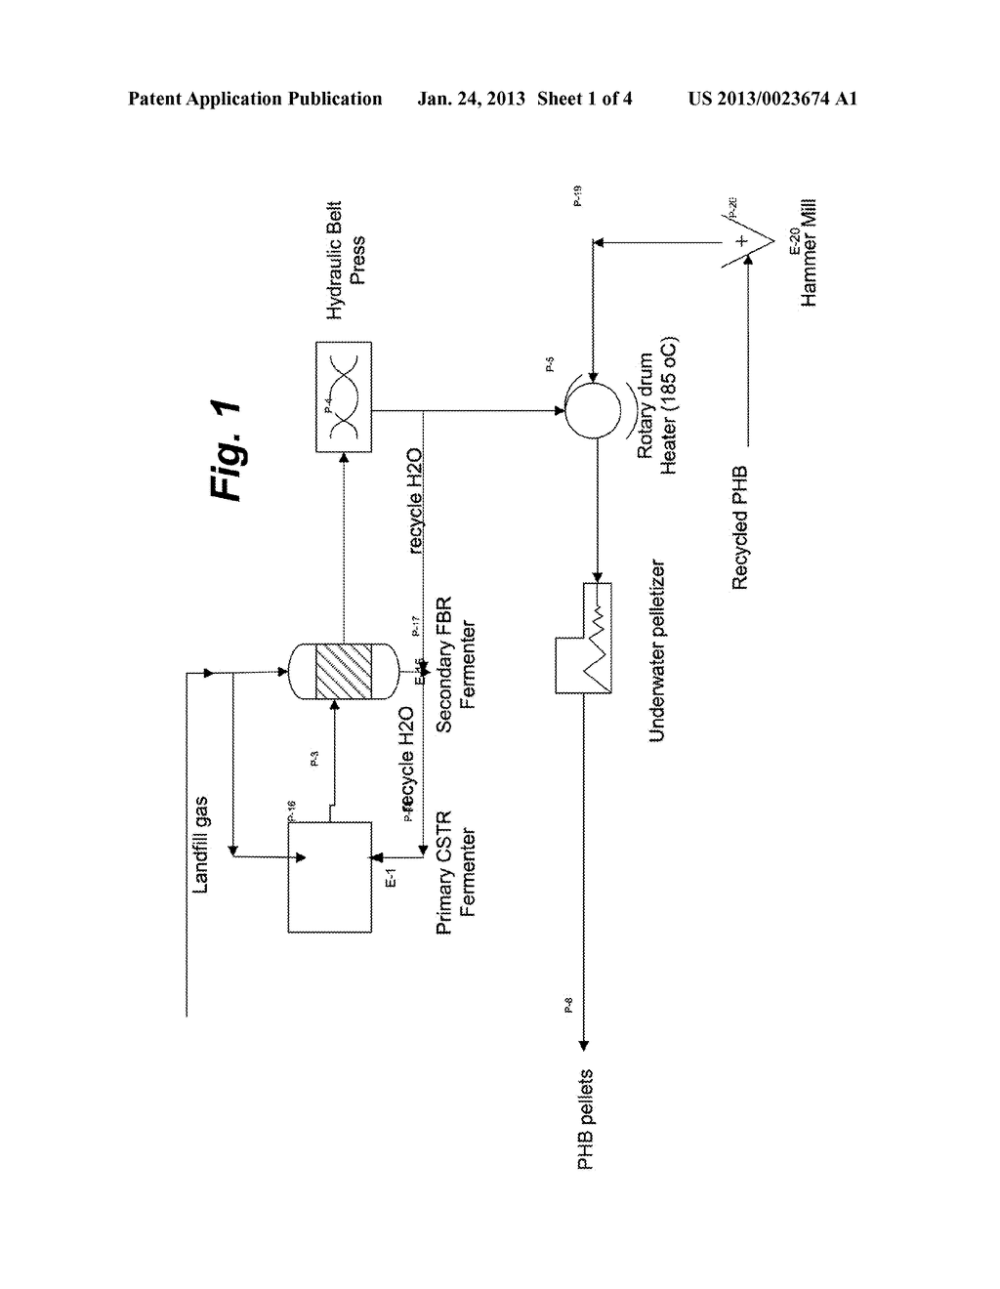 medium resolution of lactide production from thermal depolymerization of pla with applications to production of pla or other bioproducts diagram schematic and image 02